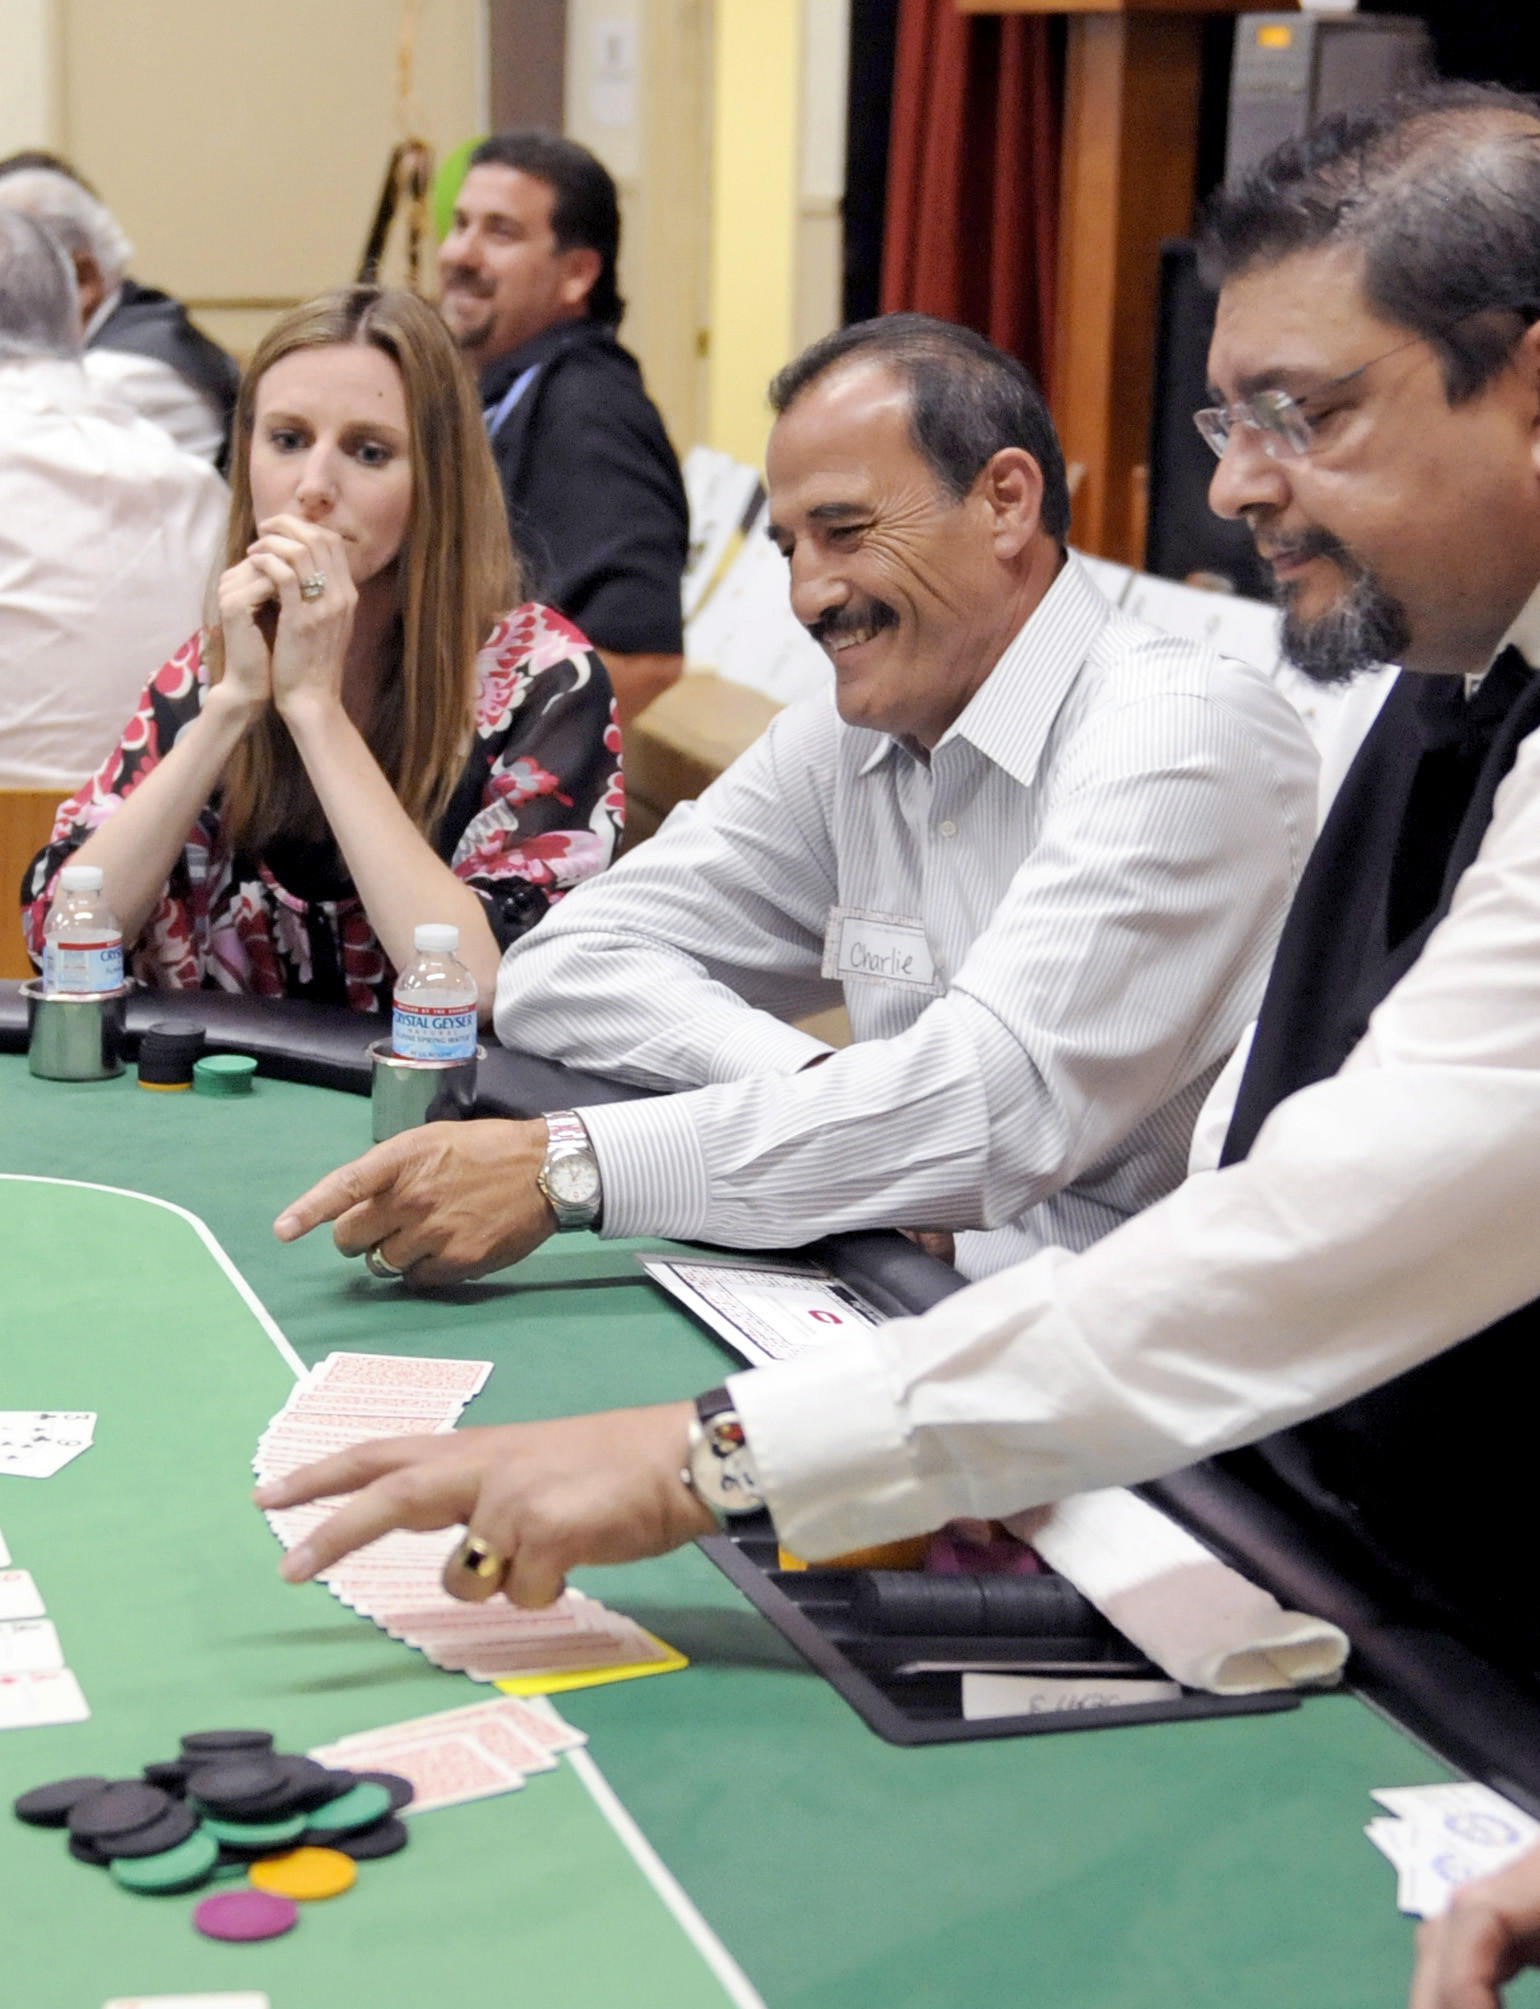 Charlie Kamar, center, smiles as he wins a hand in a poker tournament during the Casino Night at the La Cañada Flintridge Community Center on Friday, May 24, 2013 in La Cañada.